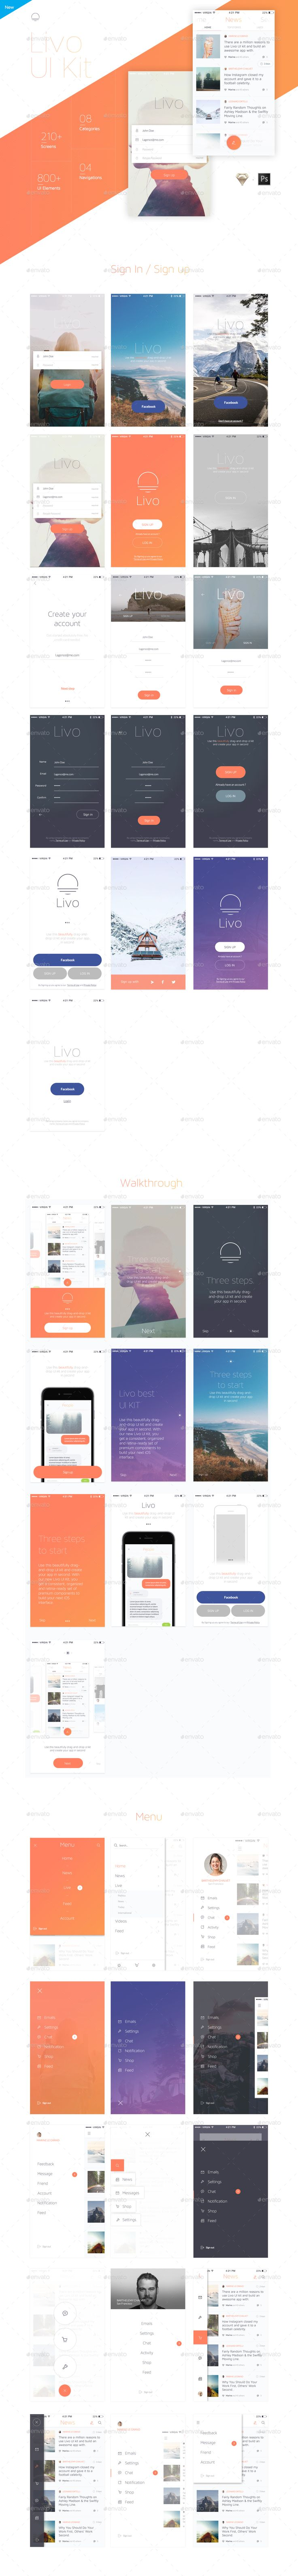 LIVO UI KIT Mobile UI Kit   LIVO UI KIT is a modern, stylish, and intuitive kit for creating your app ! It's a huge UI Kit made with Photoshop and Sketch. LIVO contains more than 210 elaborate mobi...